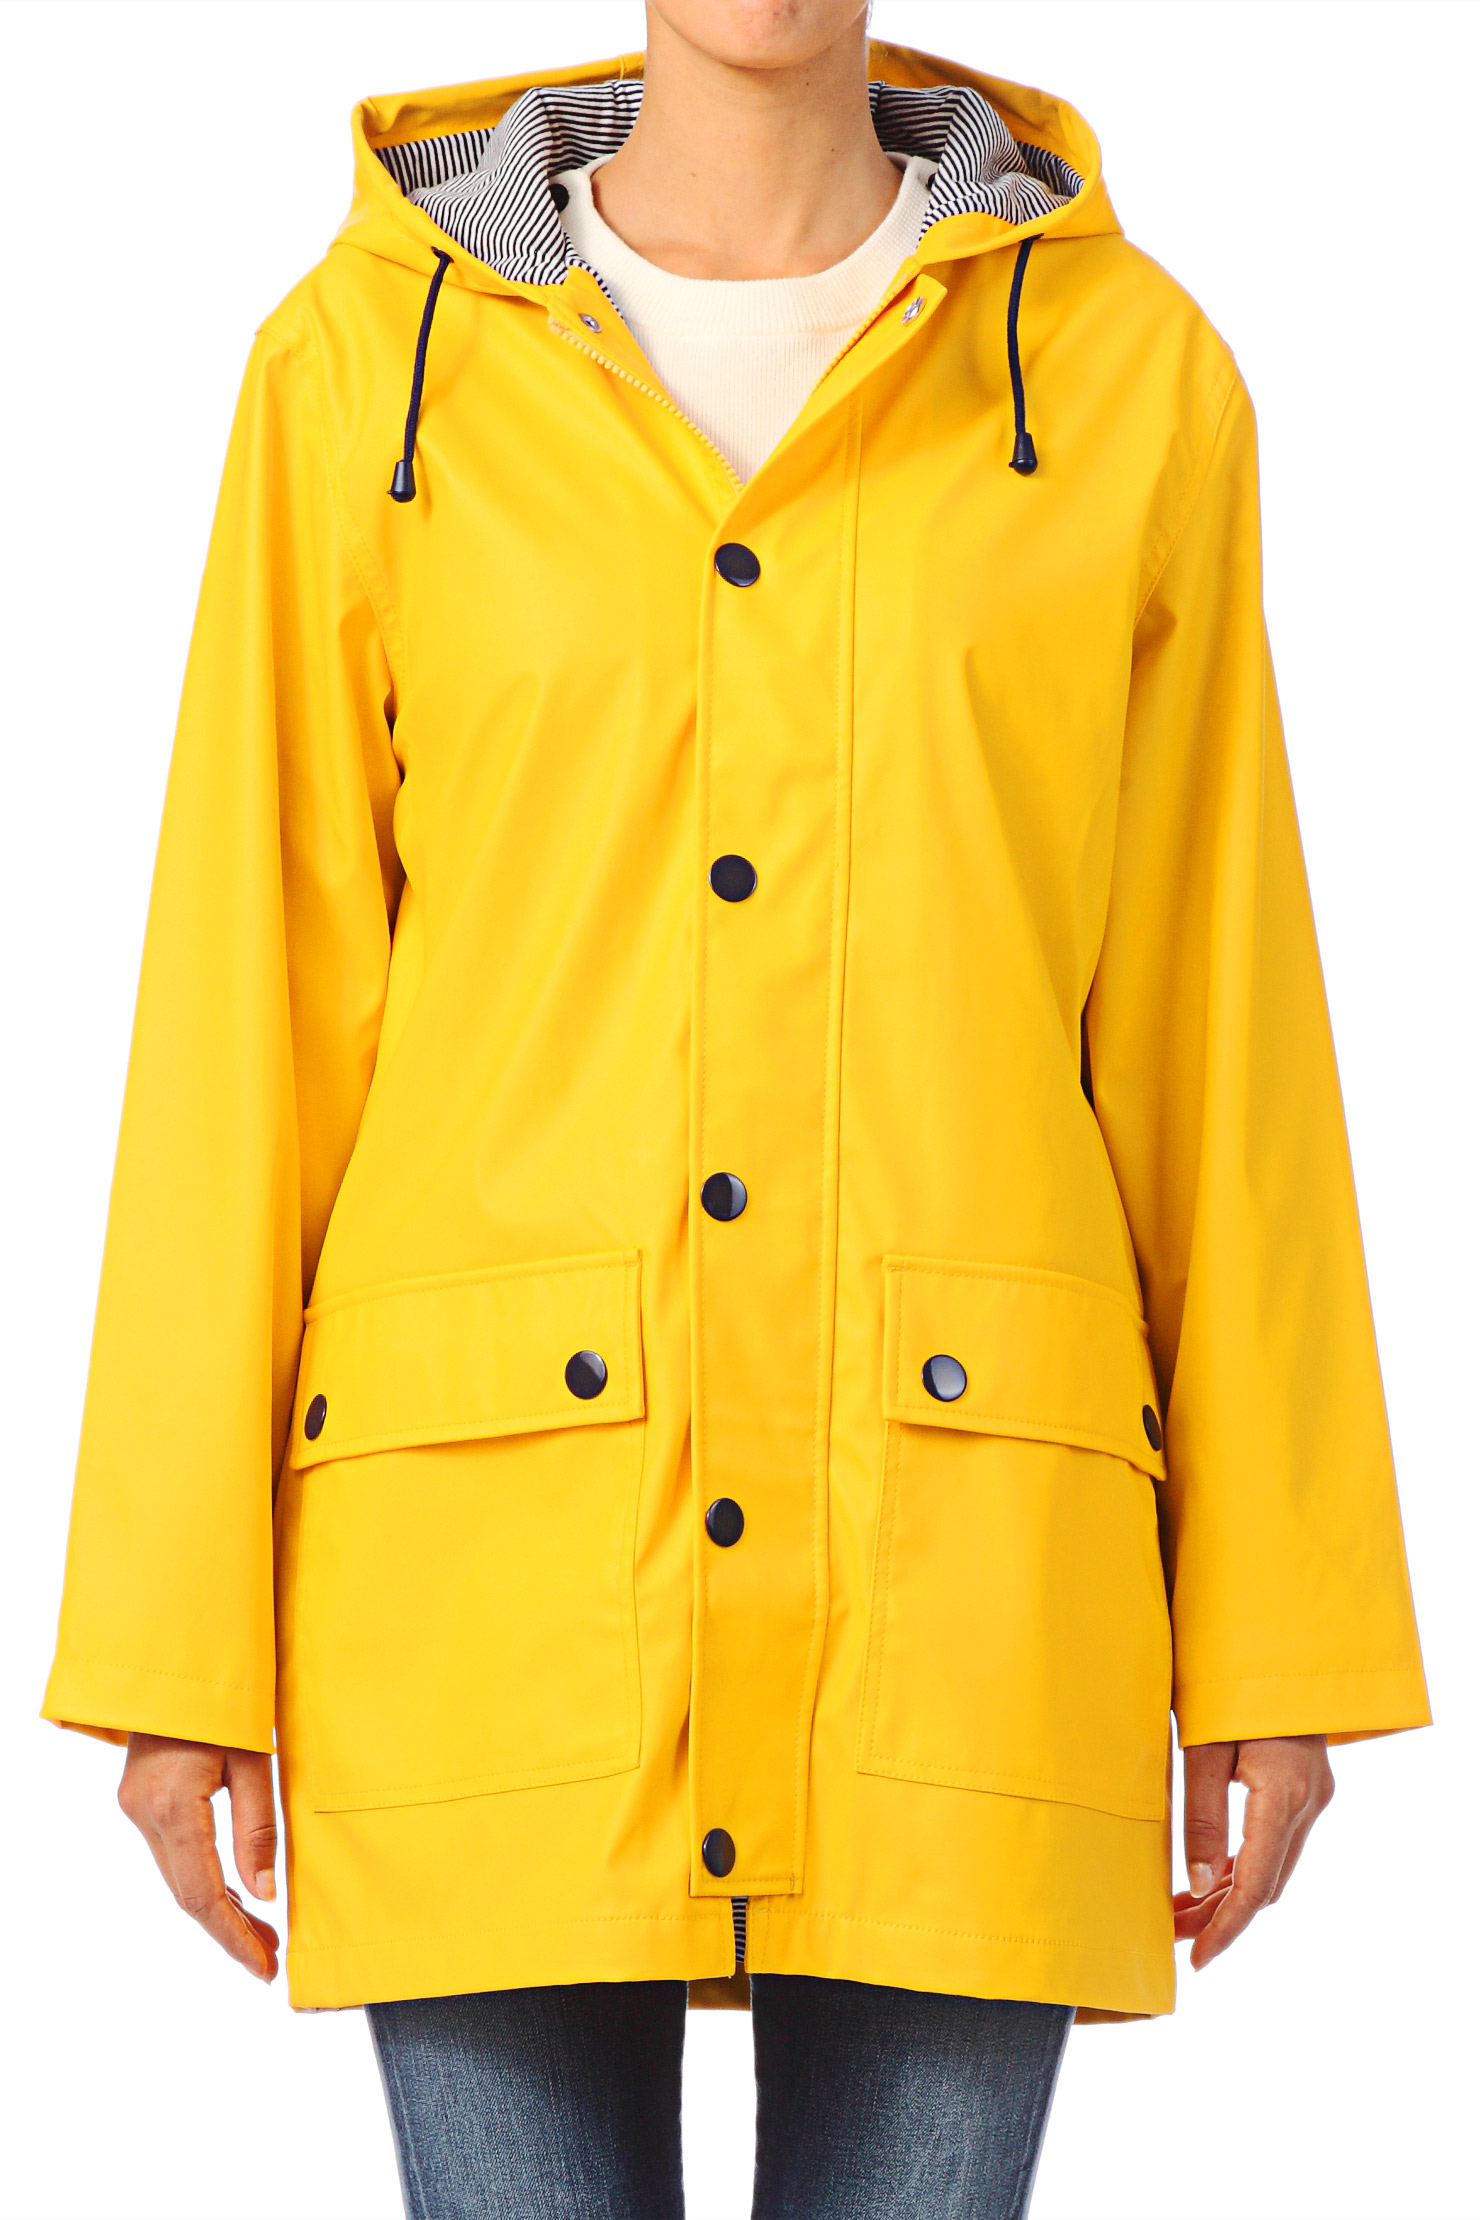 Womens Yellow Rain Coat - Coat Racks